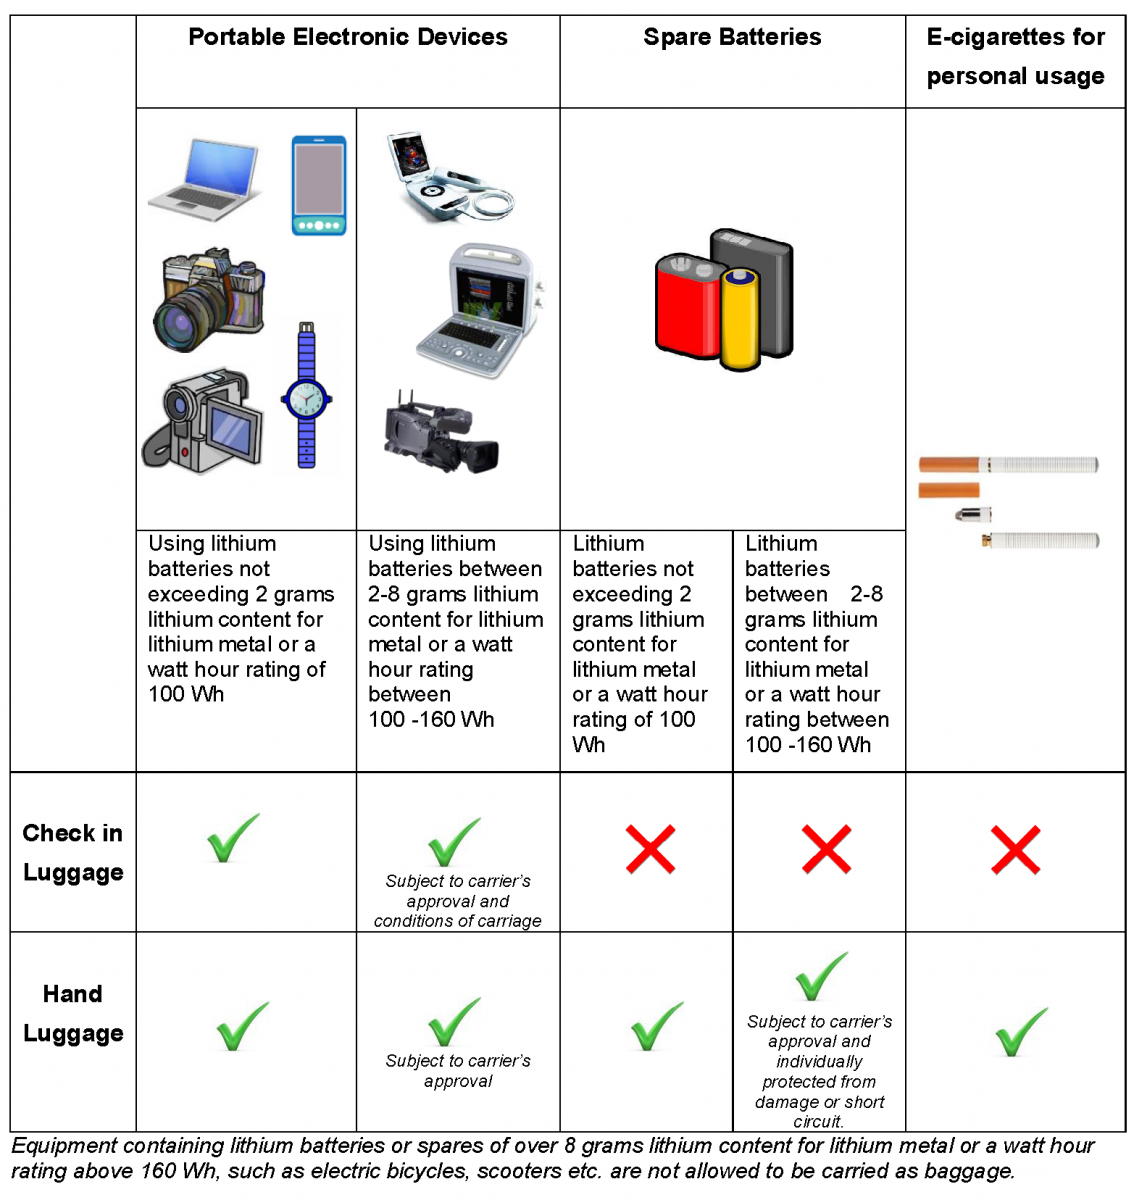 New requirement for carriage of lithium batteries on aircraft devices with lithium batteries and spare lithium batteries on aircraft also electronic smoking devices are included in the scope of this regulation pooptronica